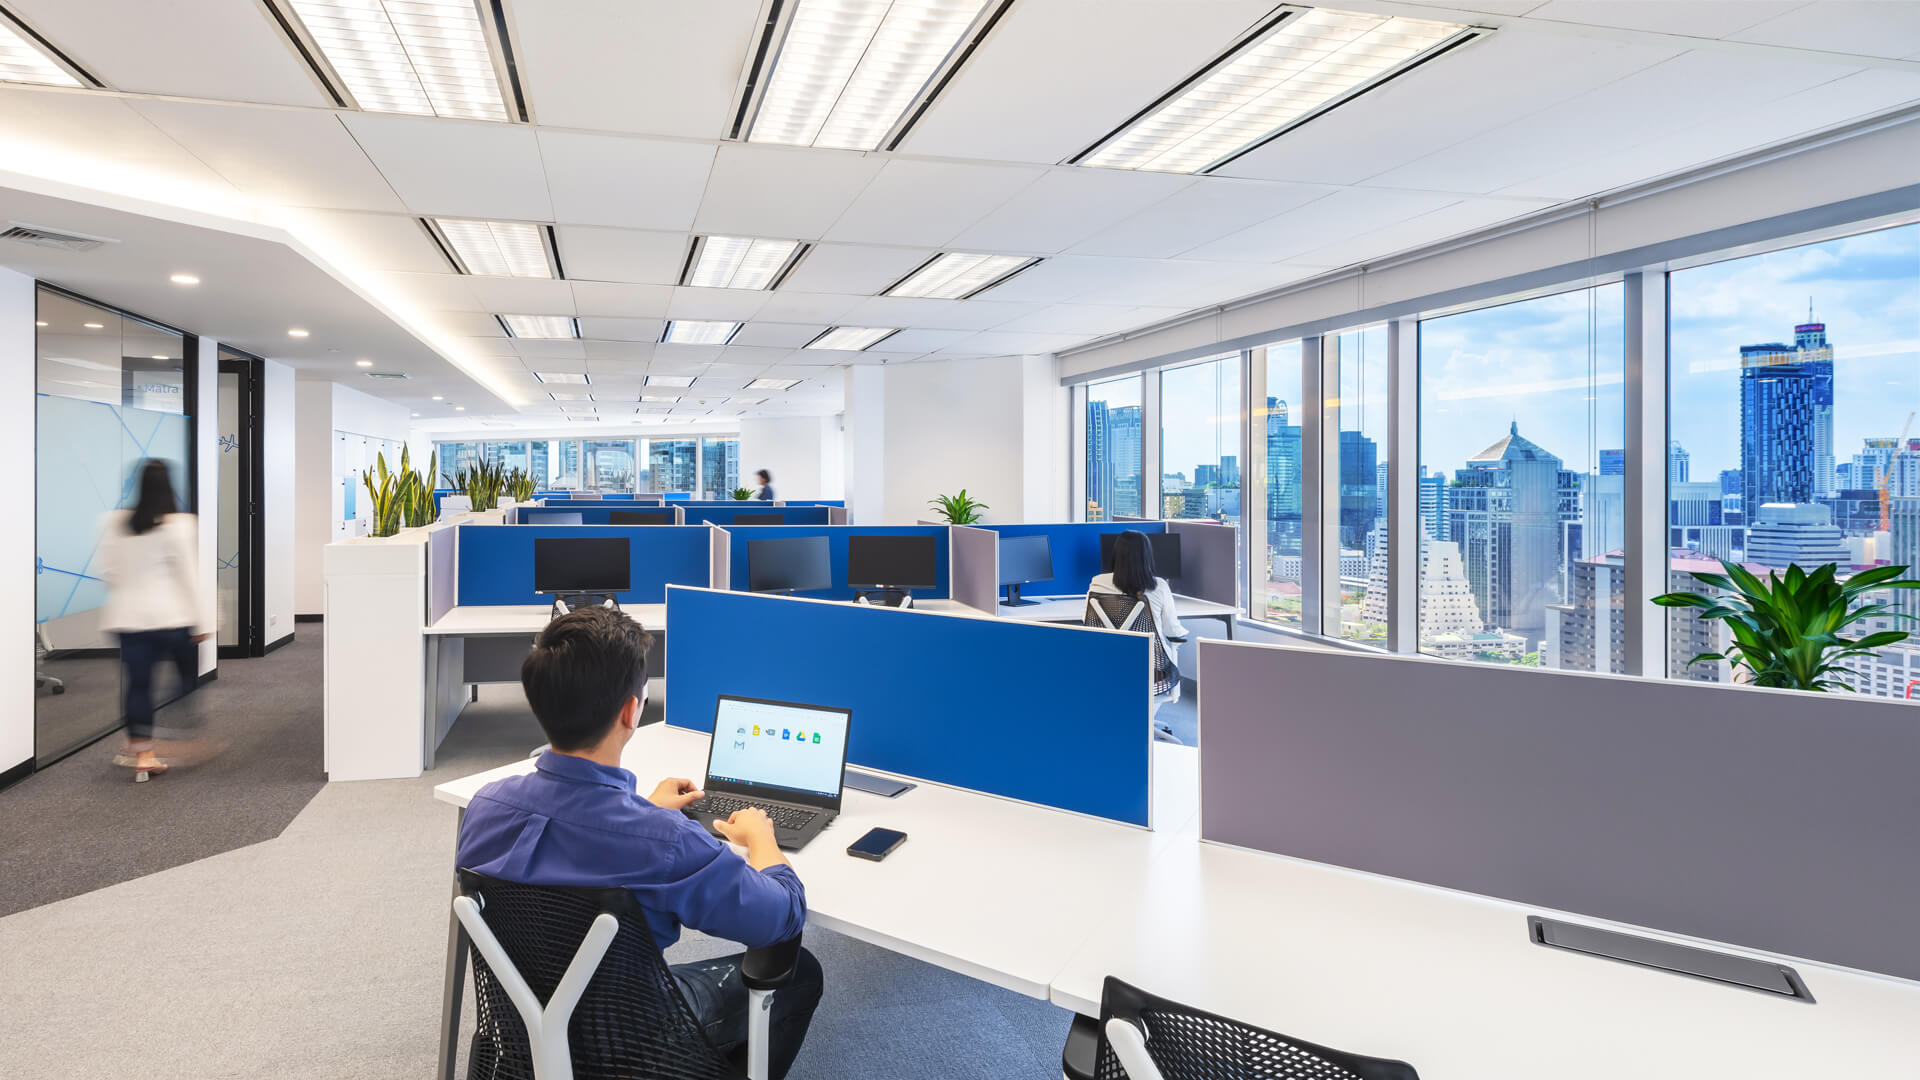 Transformation at Work: The Workplace In The New Normal